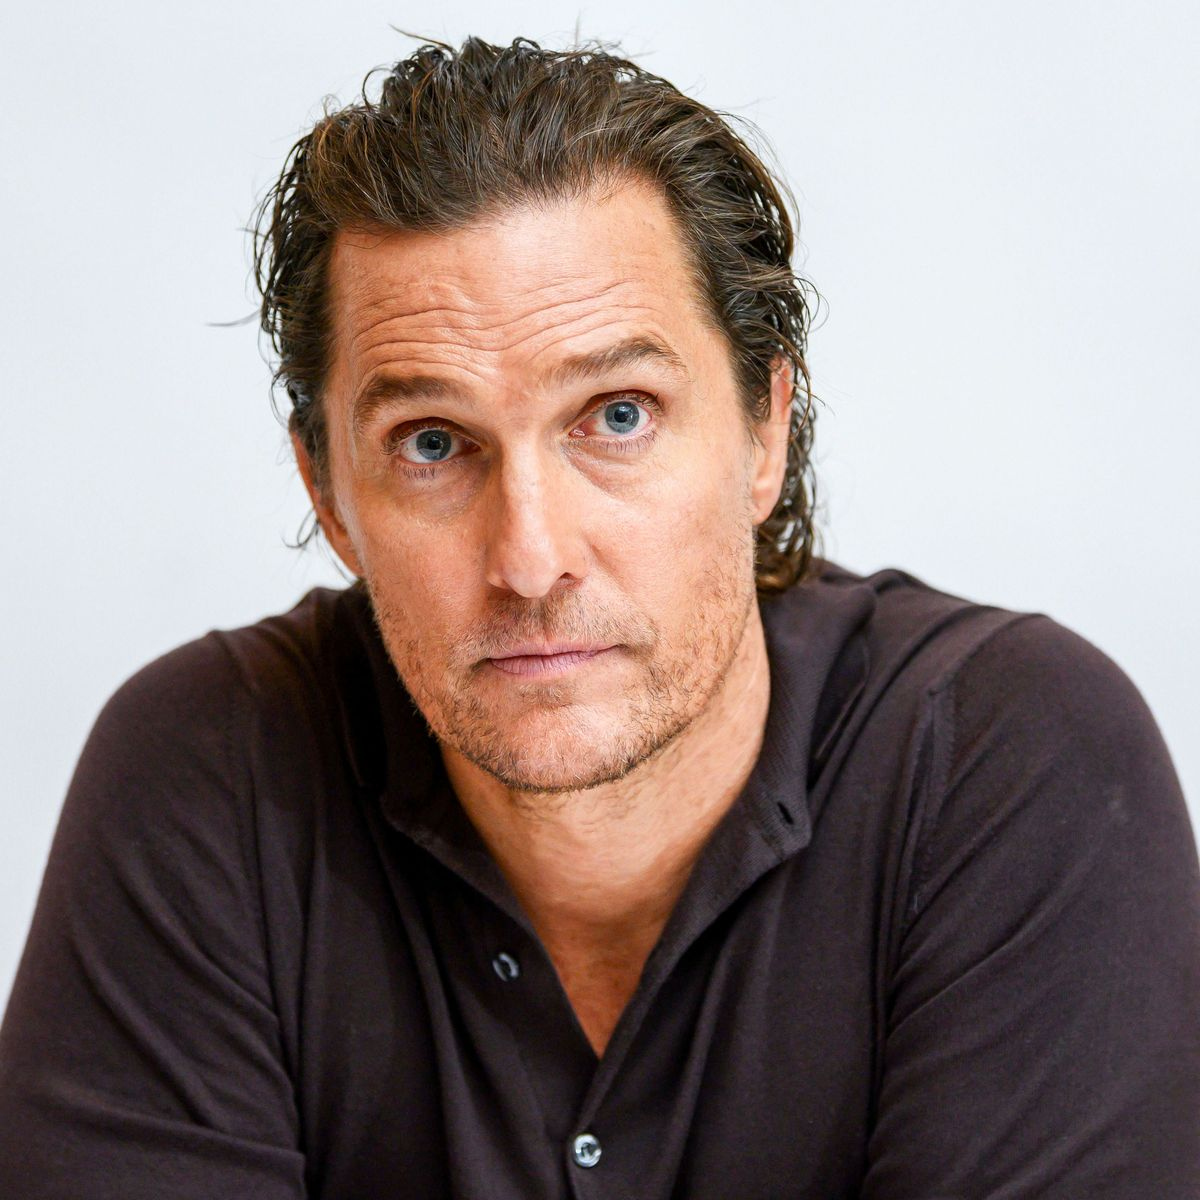 """matthew-mcconaughey-talks-the-possibility-of-him-entering-politics-and-running-for-governor-of-texas"""